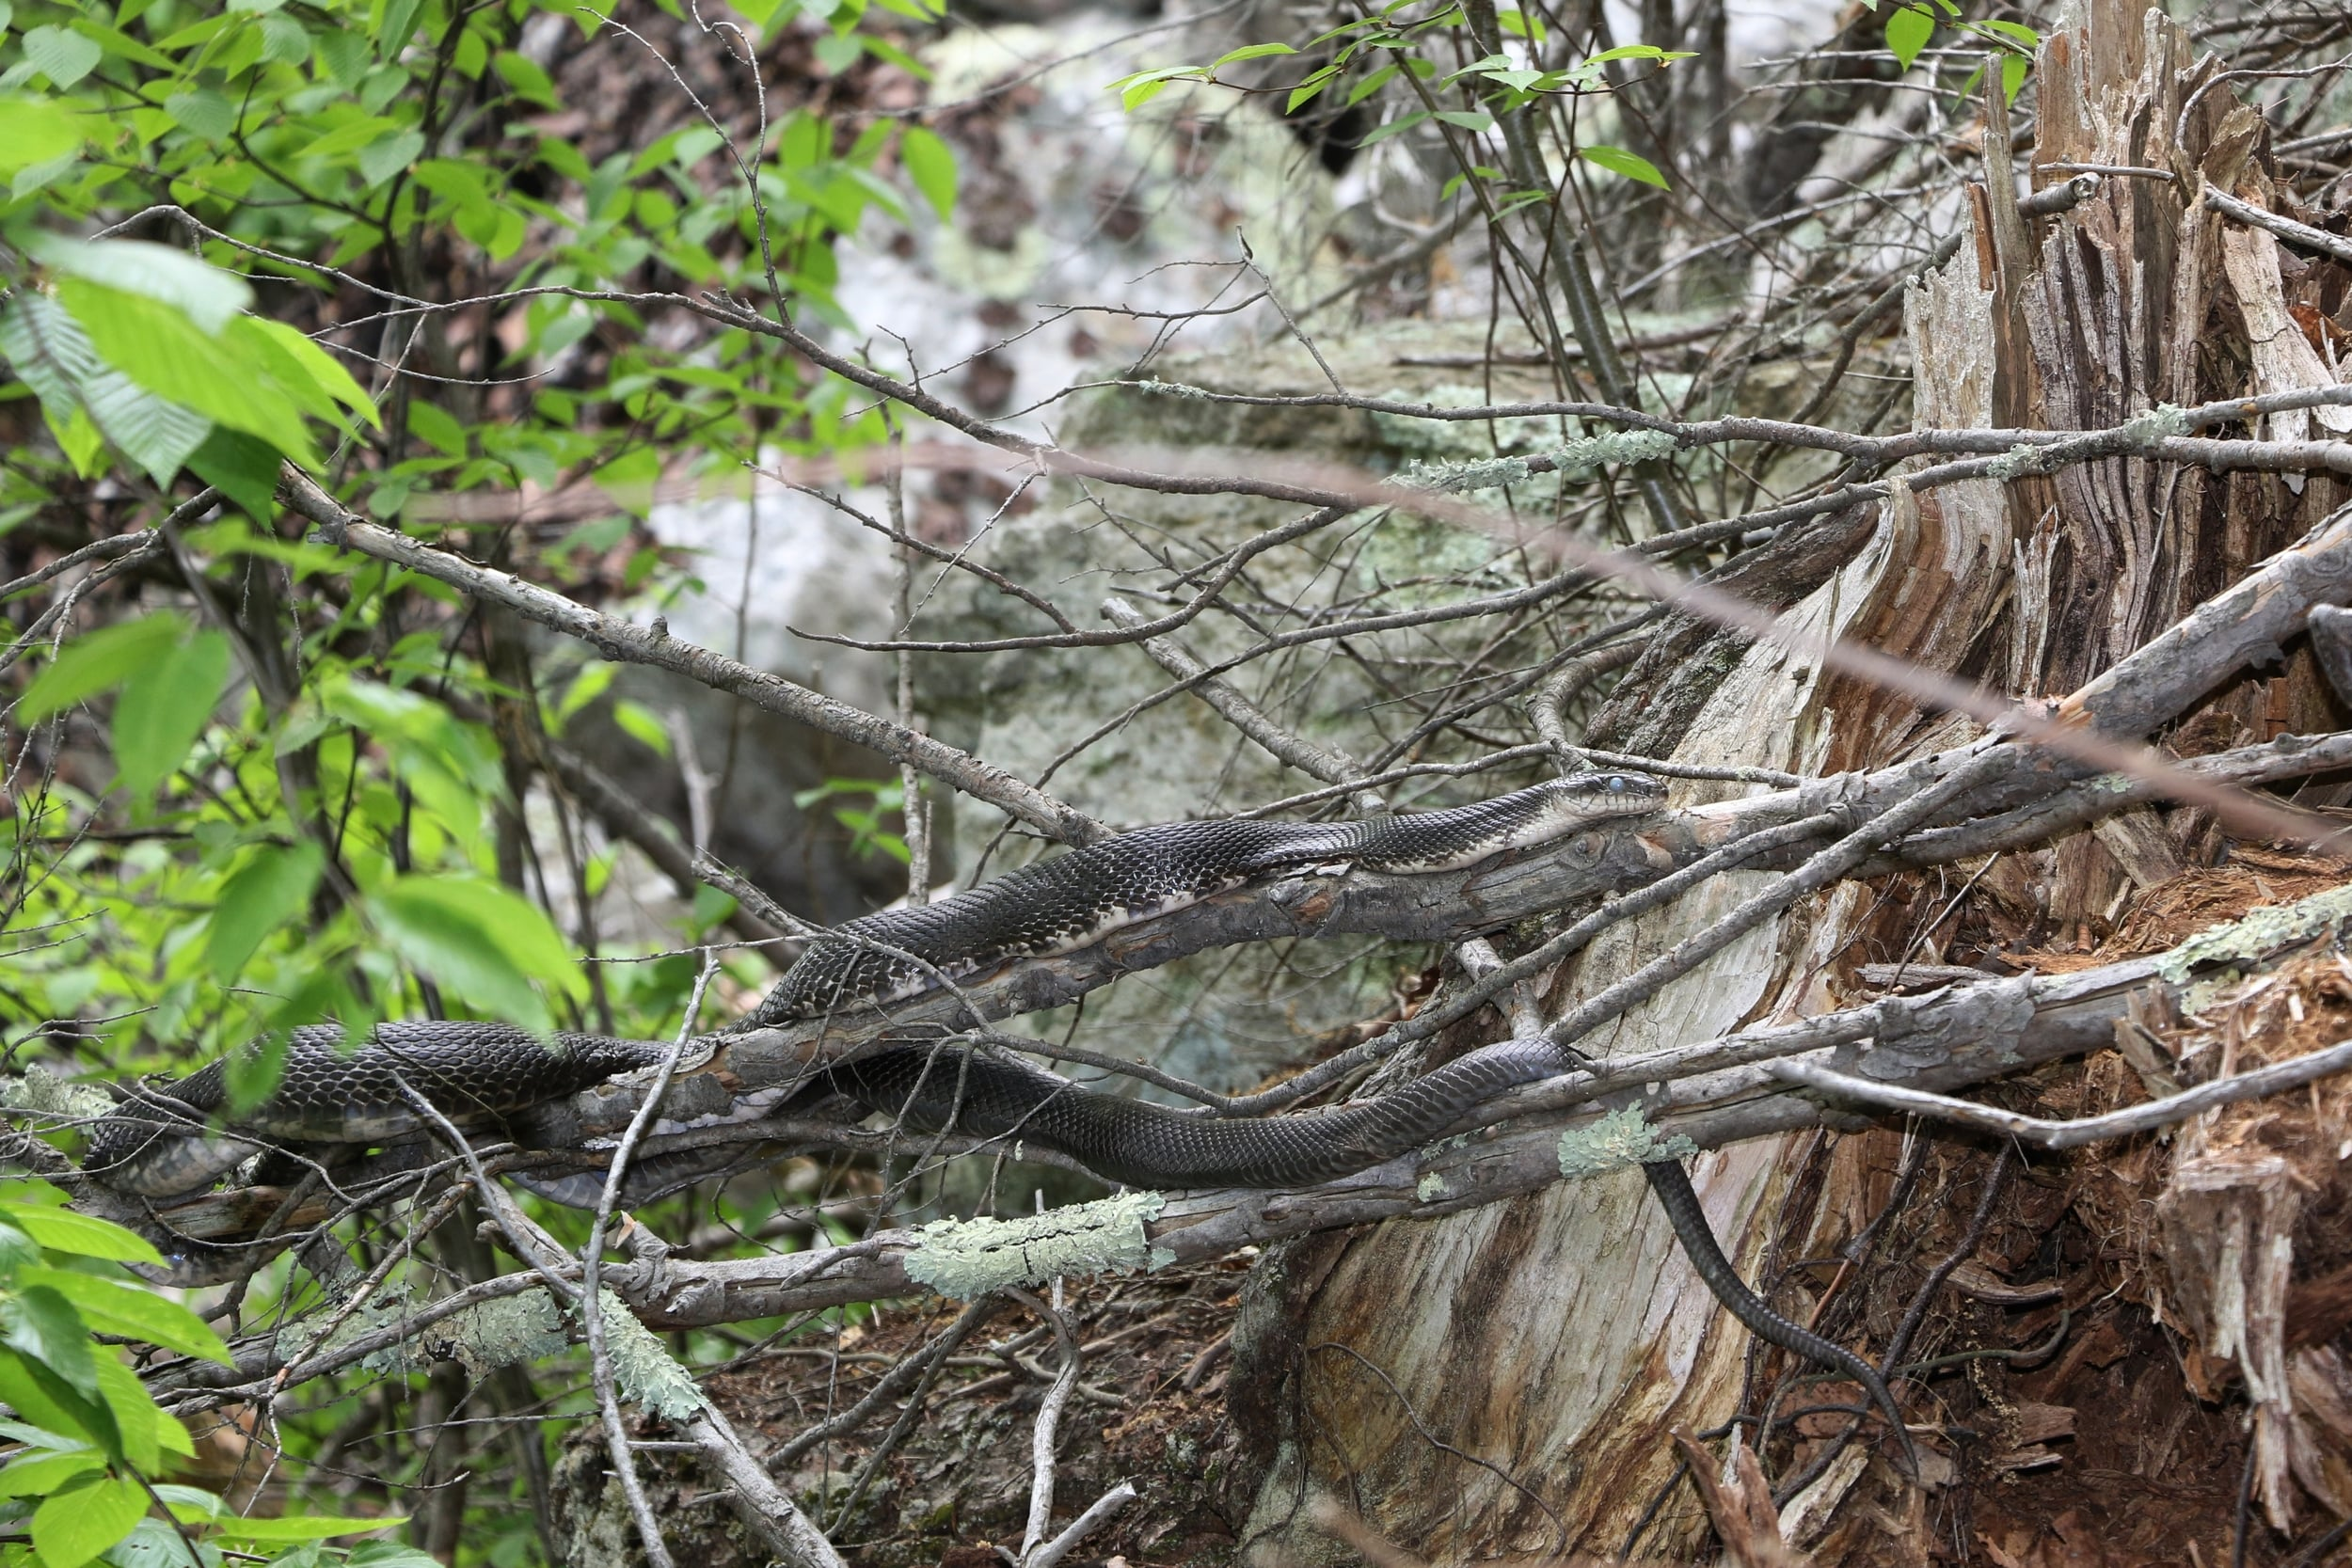 Black Ratsnake - I've been seeing this snake for a few years now. I've never touched her but have gotten one of her sheds two years ago that measured over seven feet. I'd love to know her full length, but I'll leave her be.